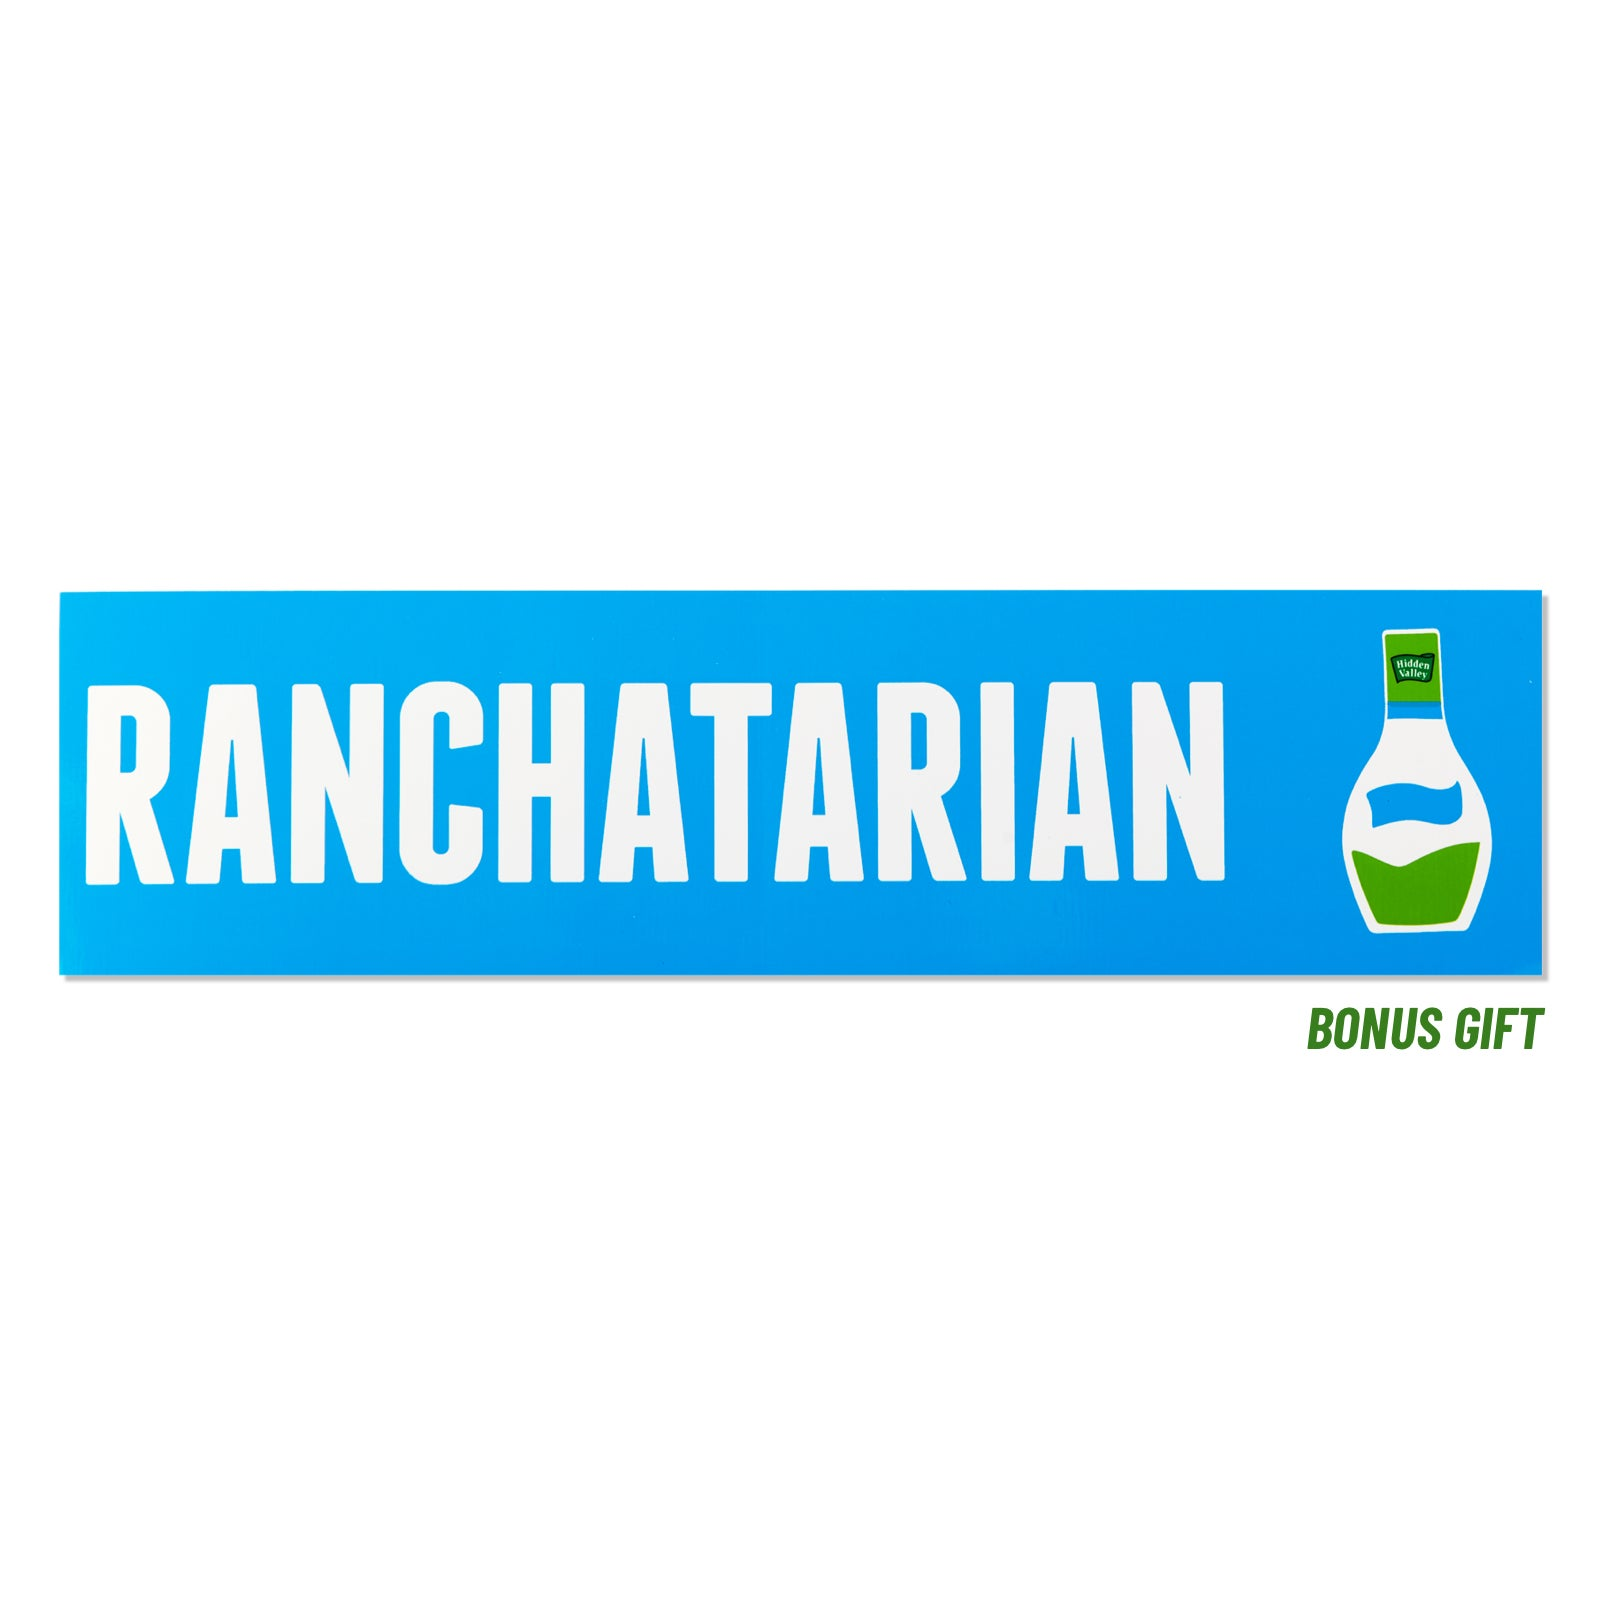 ranch sticker bonus gift